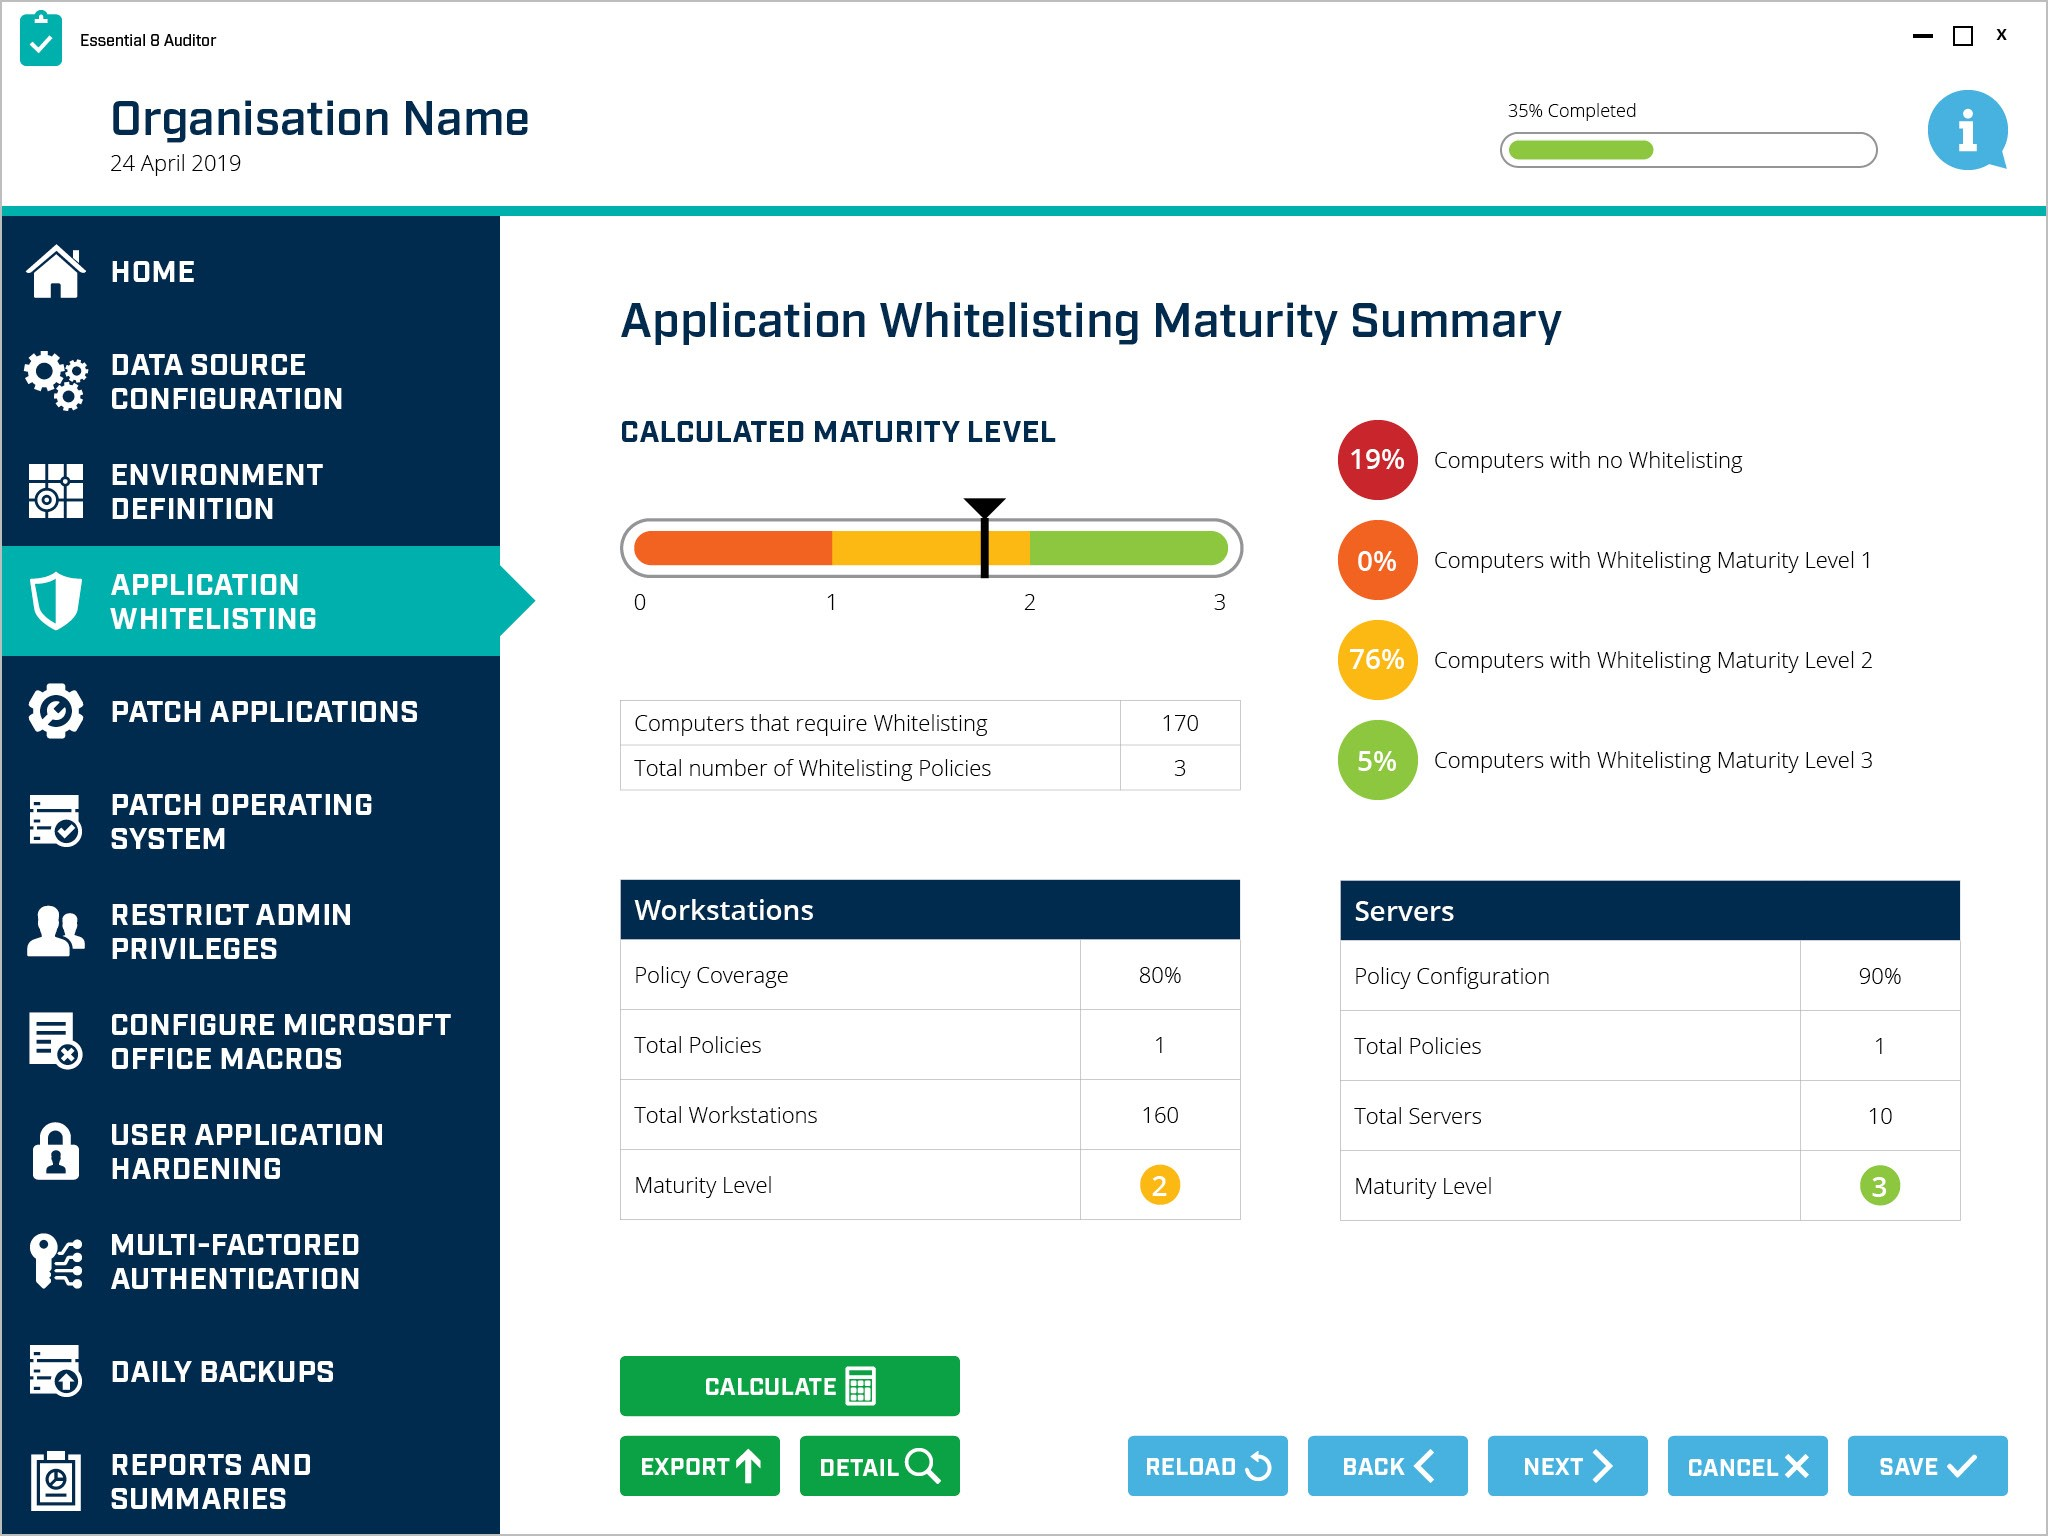 Essential 8 Auditor - Application Whitelisting summary